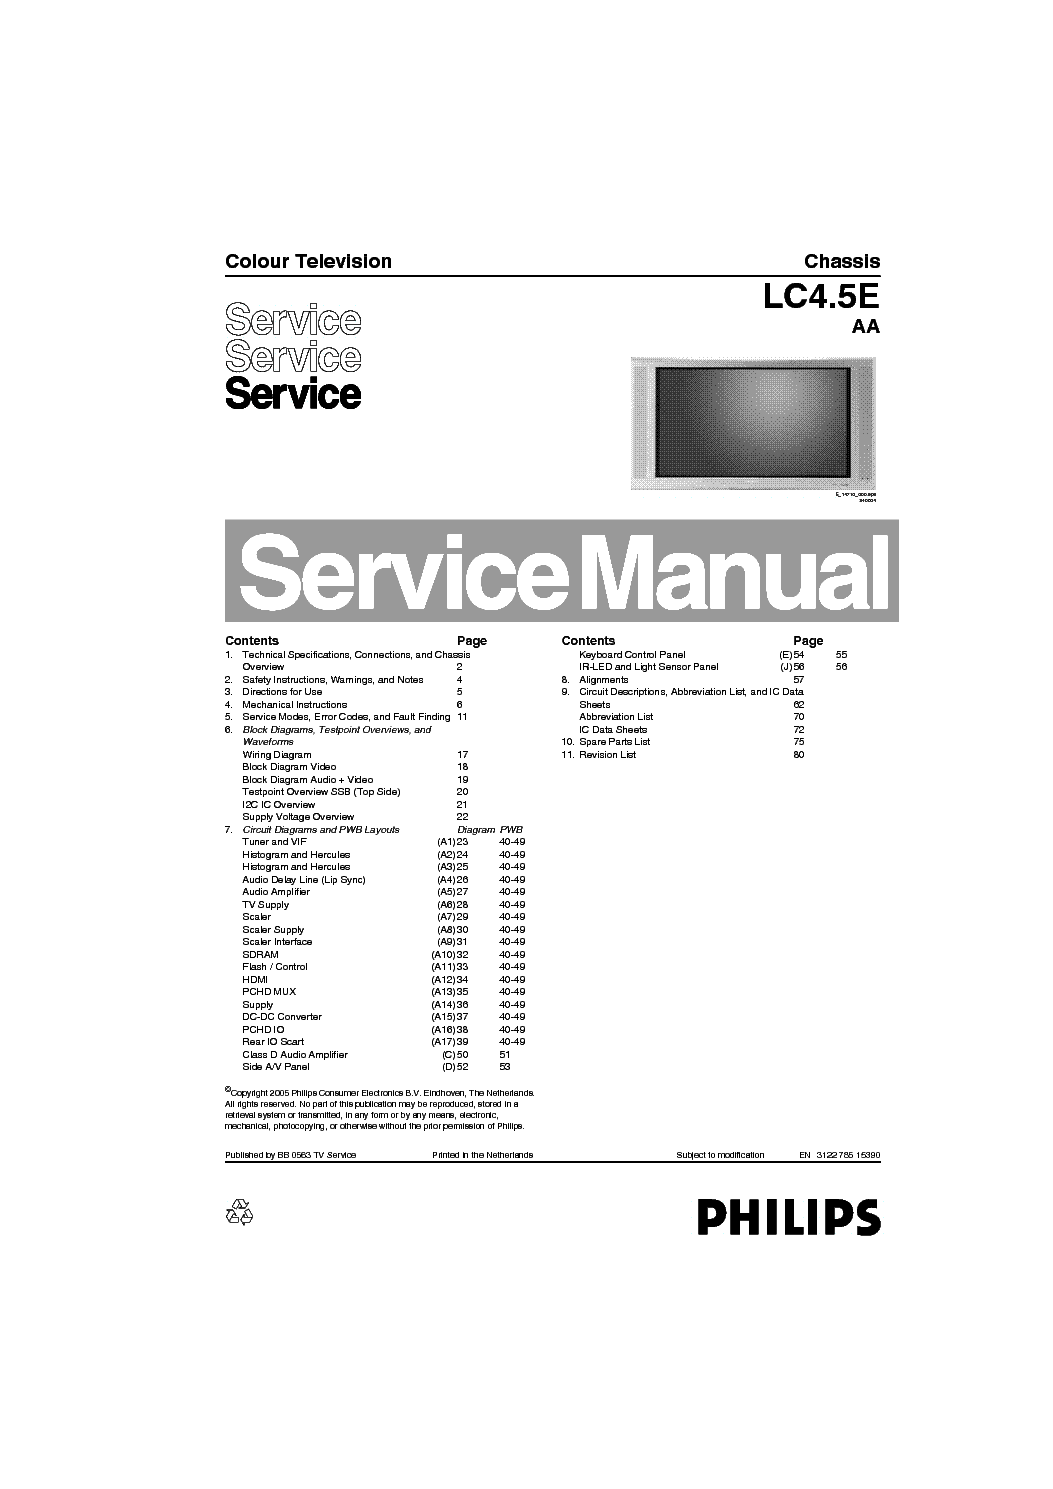 PHILIPS 32PF4320 10 CHASSIS LC4.5E AA service manual (1st page)